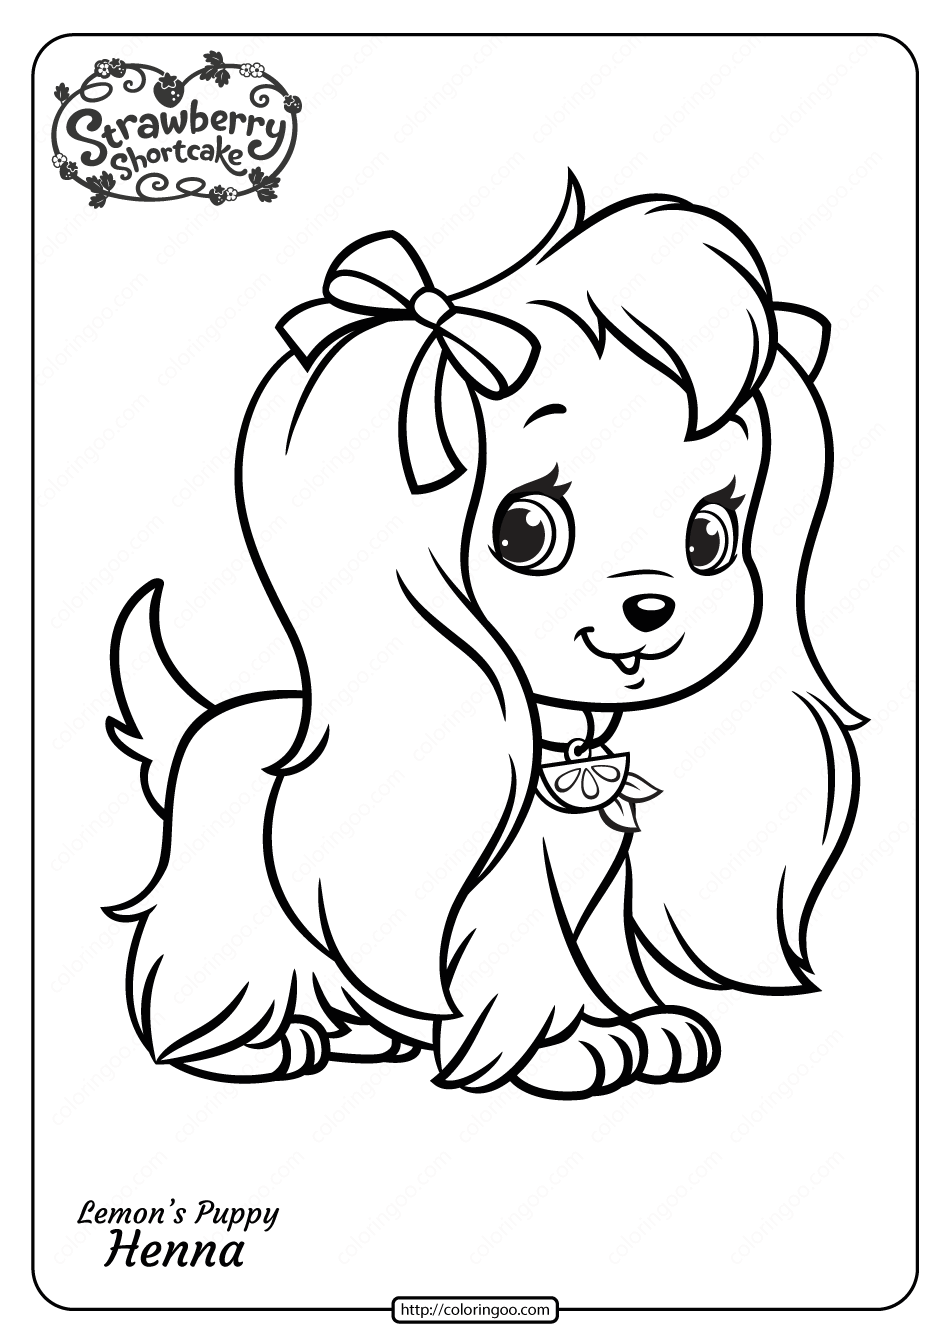 Free Printable Lemons Puppy Henna Pdf Coloring Page